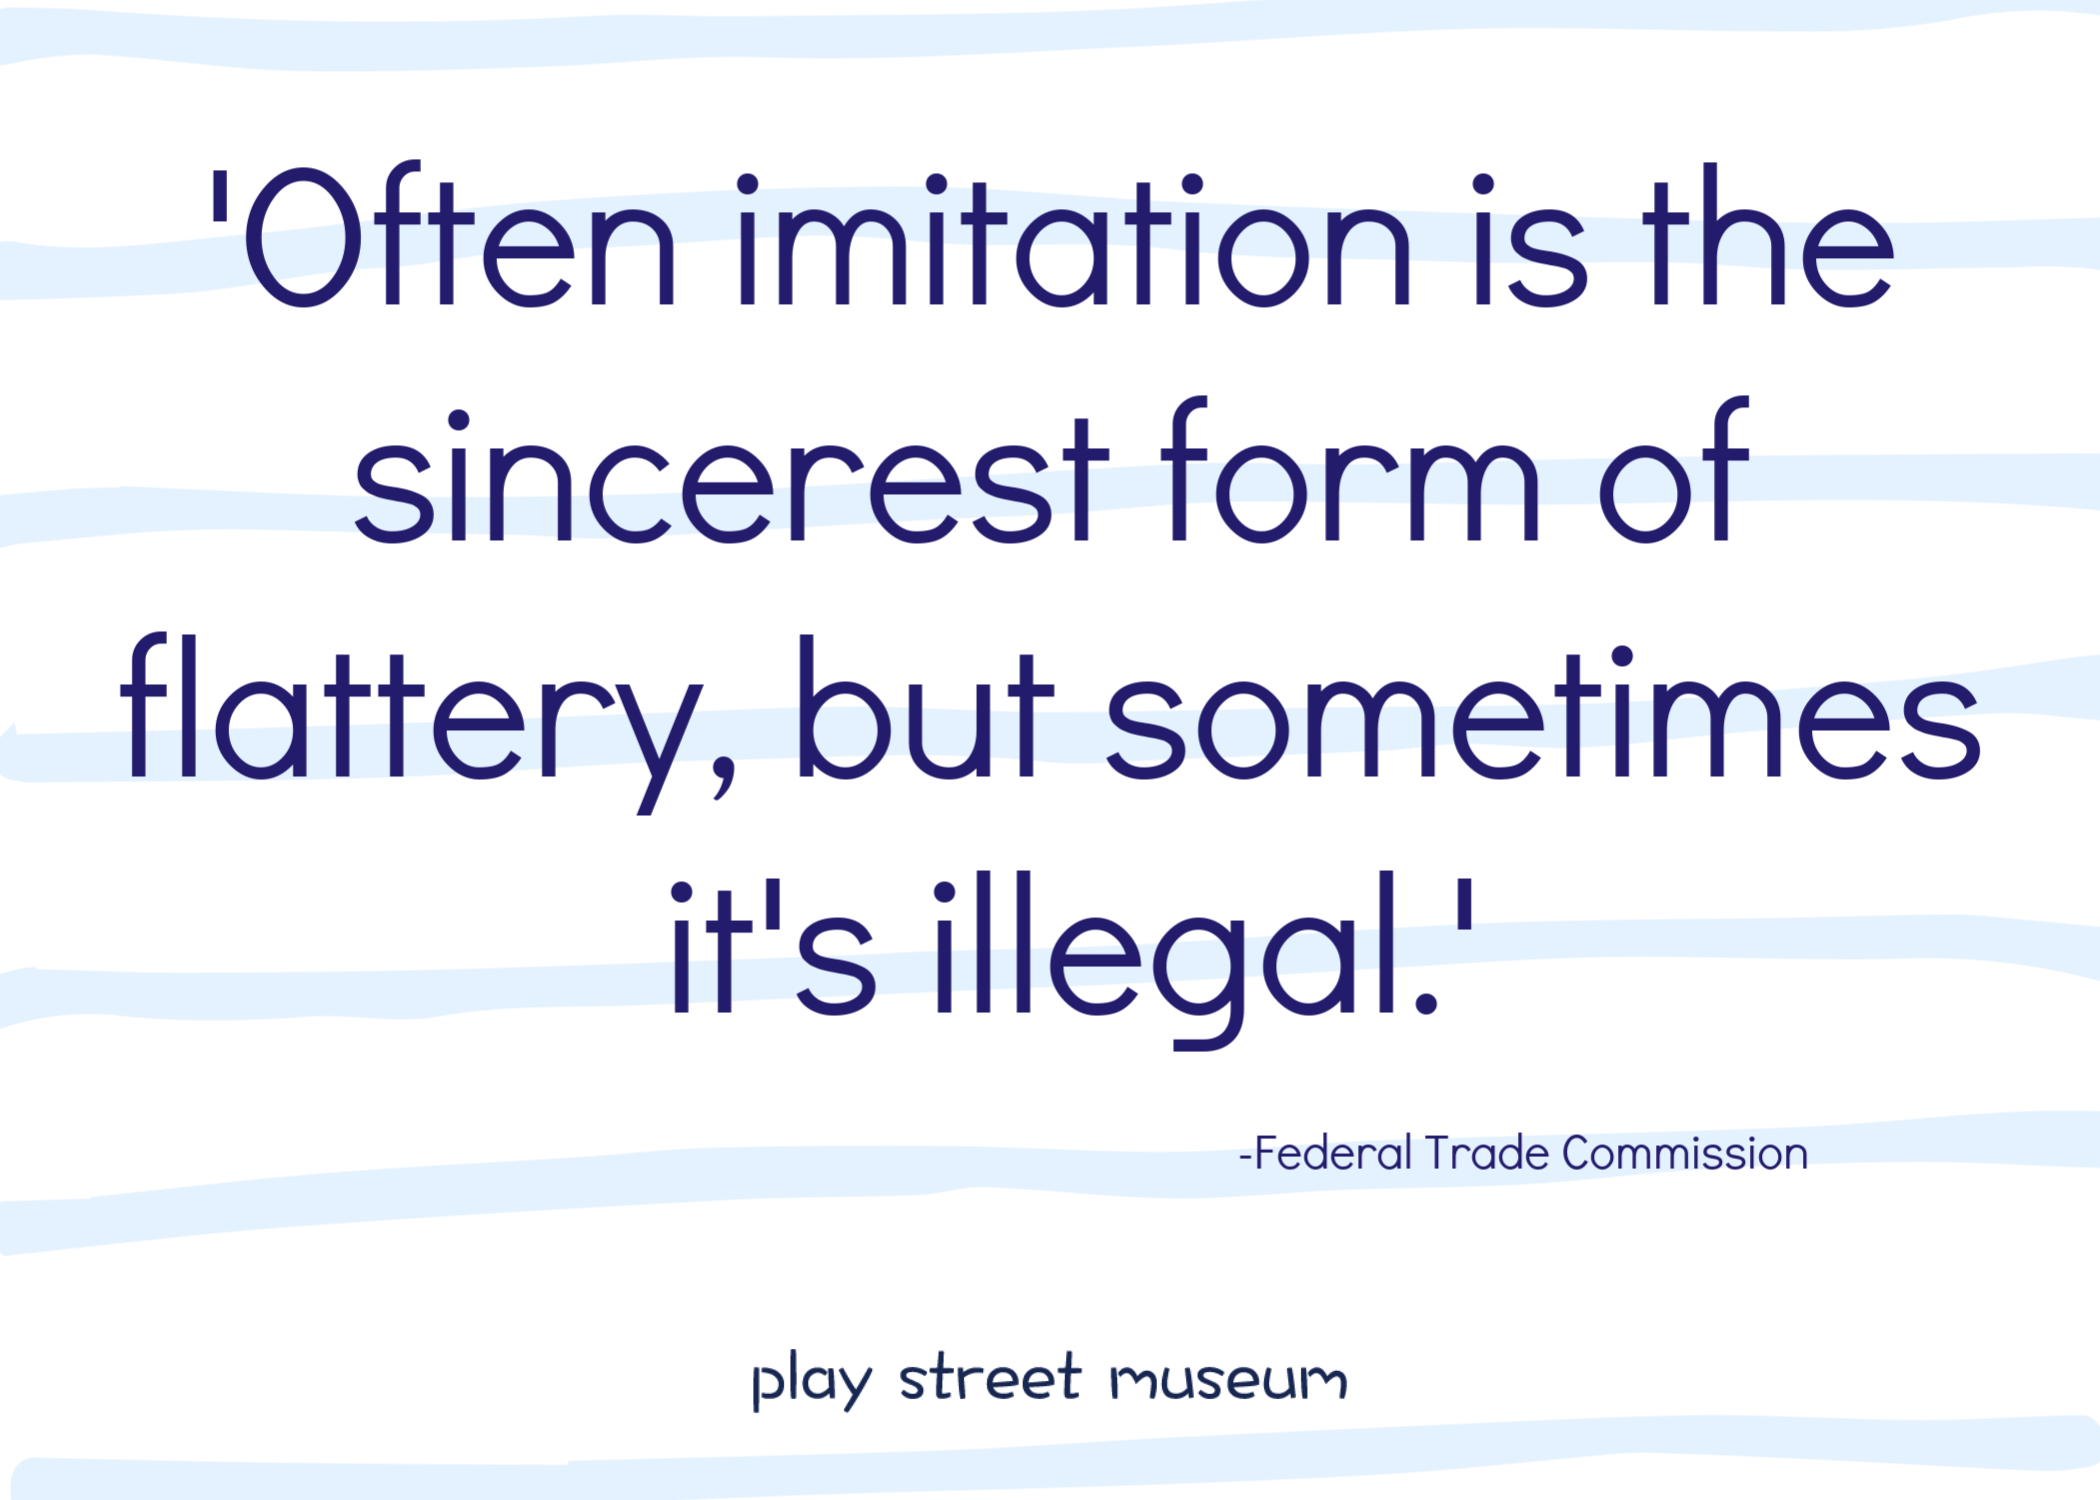 imitation quote no hashtags.png